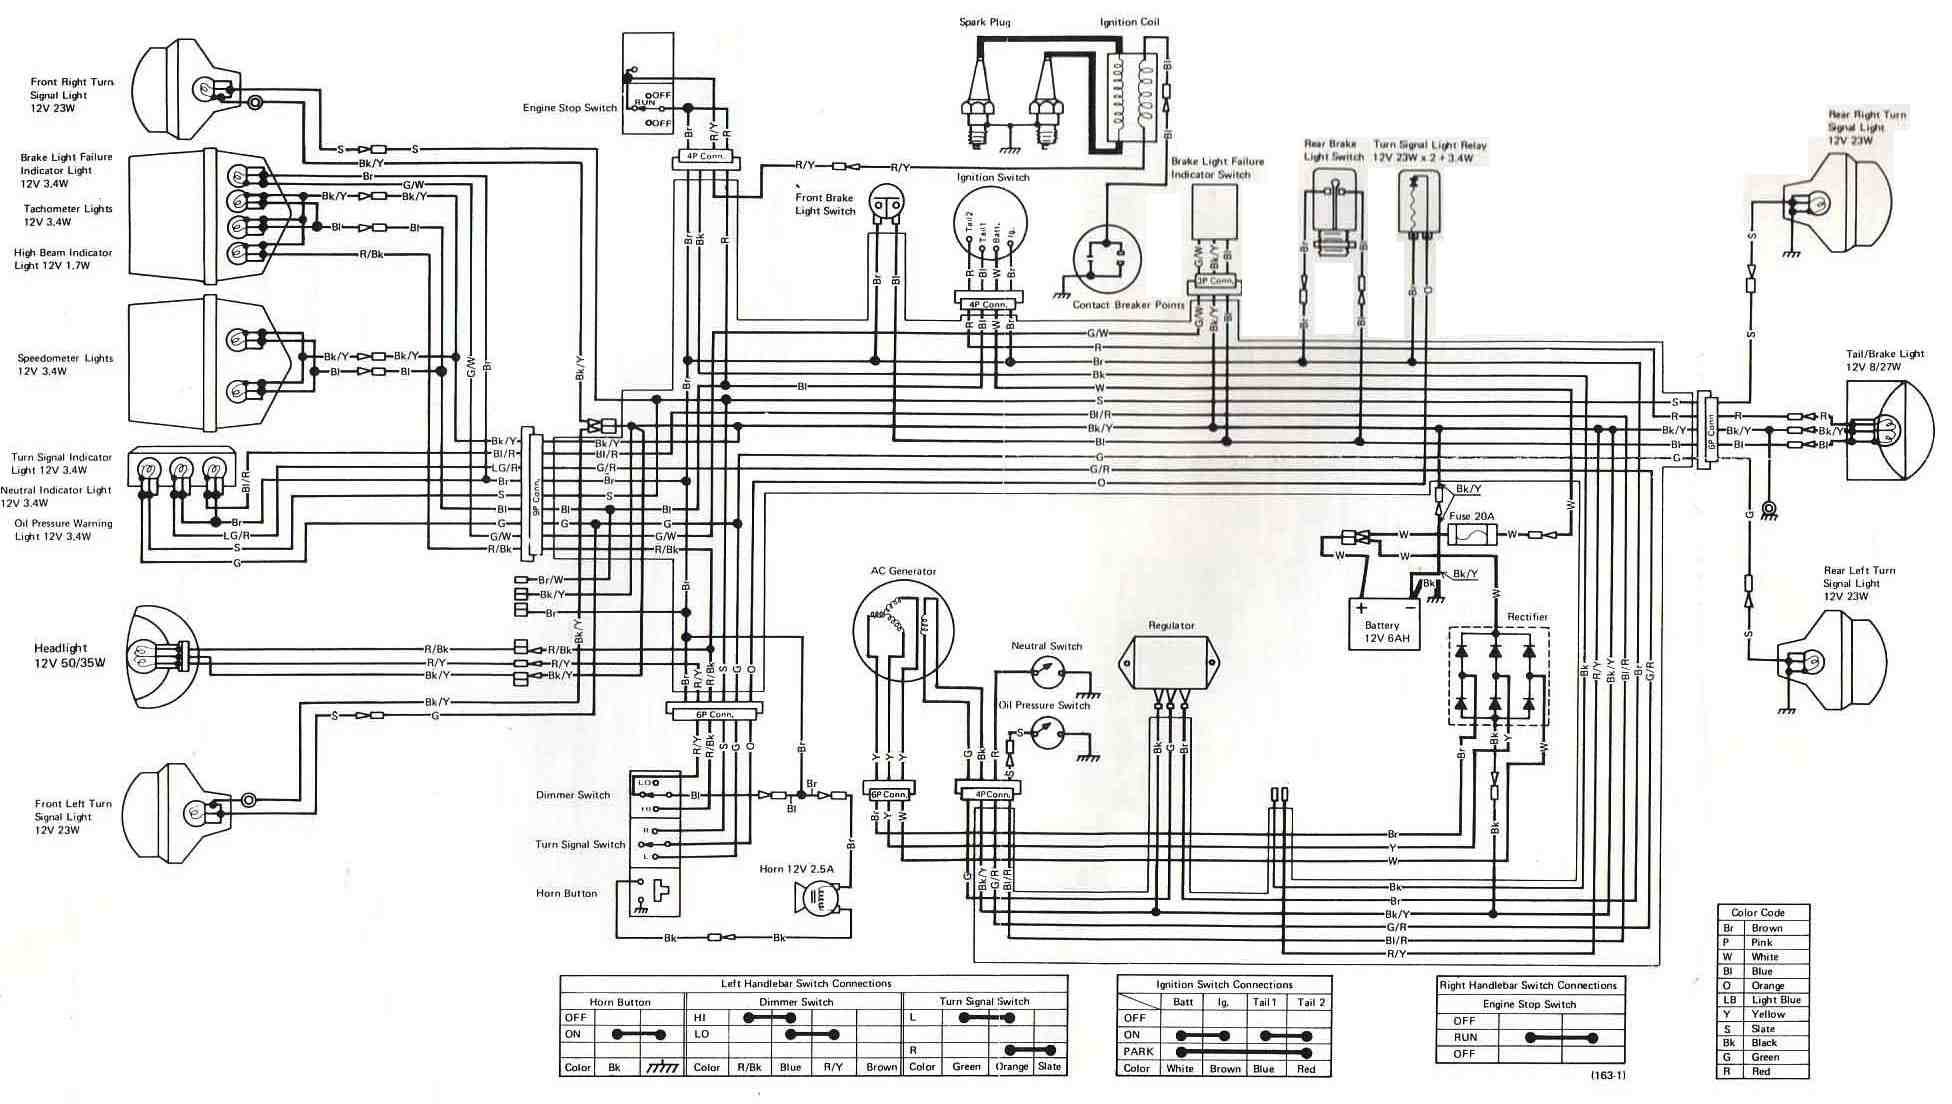 diagram of motorcycle engine 1996 kawasaki 1100 ninja wiring diagram kawasaki wiring diagrams of diagram of motorcycle engine?quality\=80\&strip\=all 1996 kawasaki 1100 ninja wiring diagram all wiring diagram